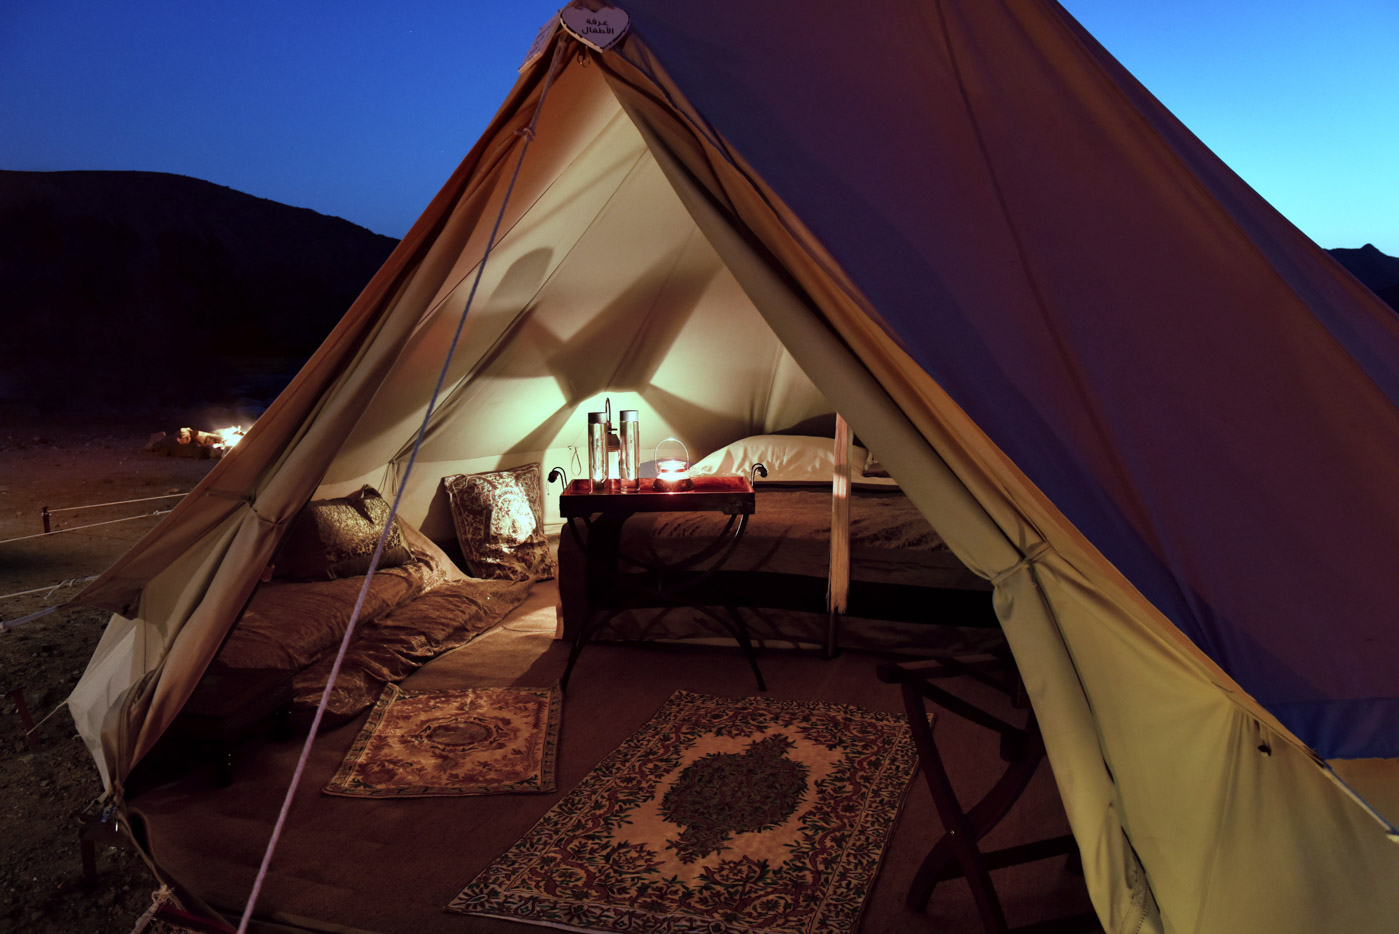 Canvas Club In Muscat Governorate, Oman | Glamping.com